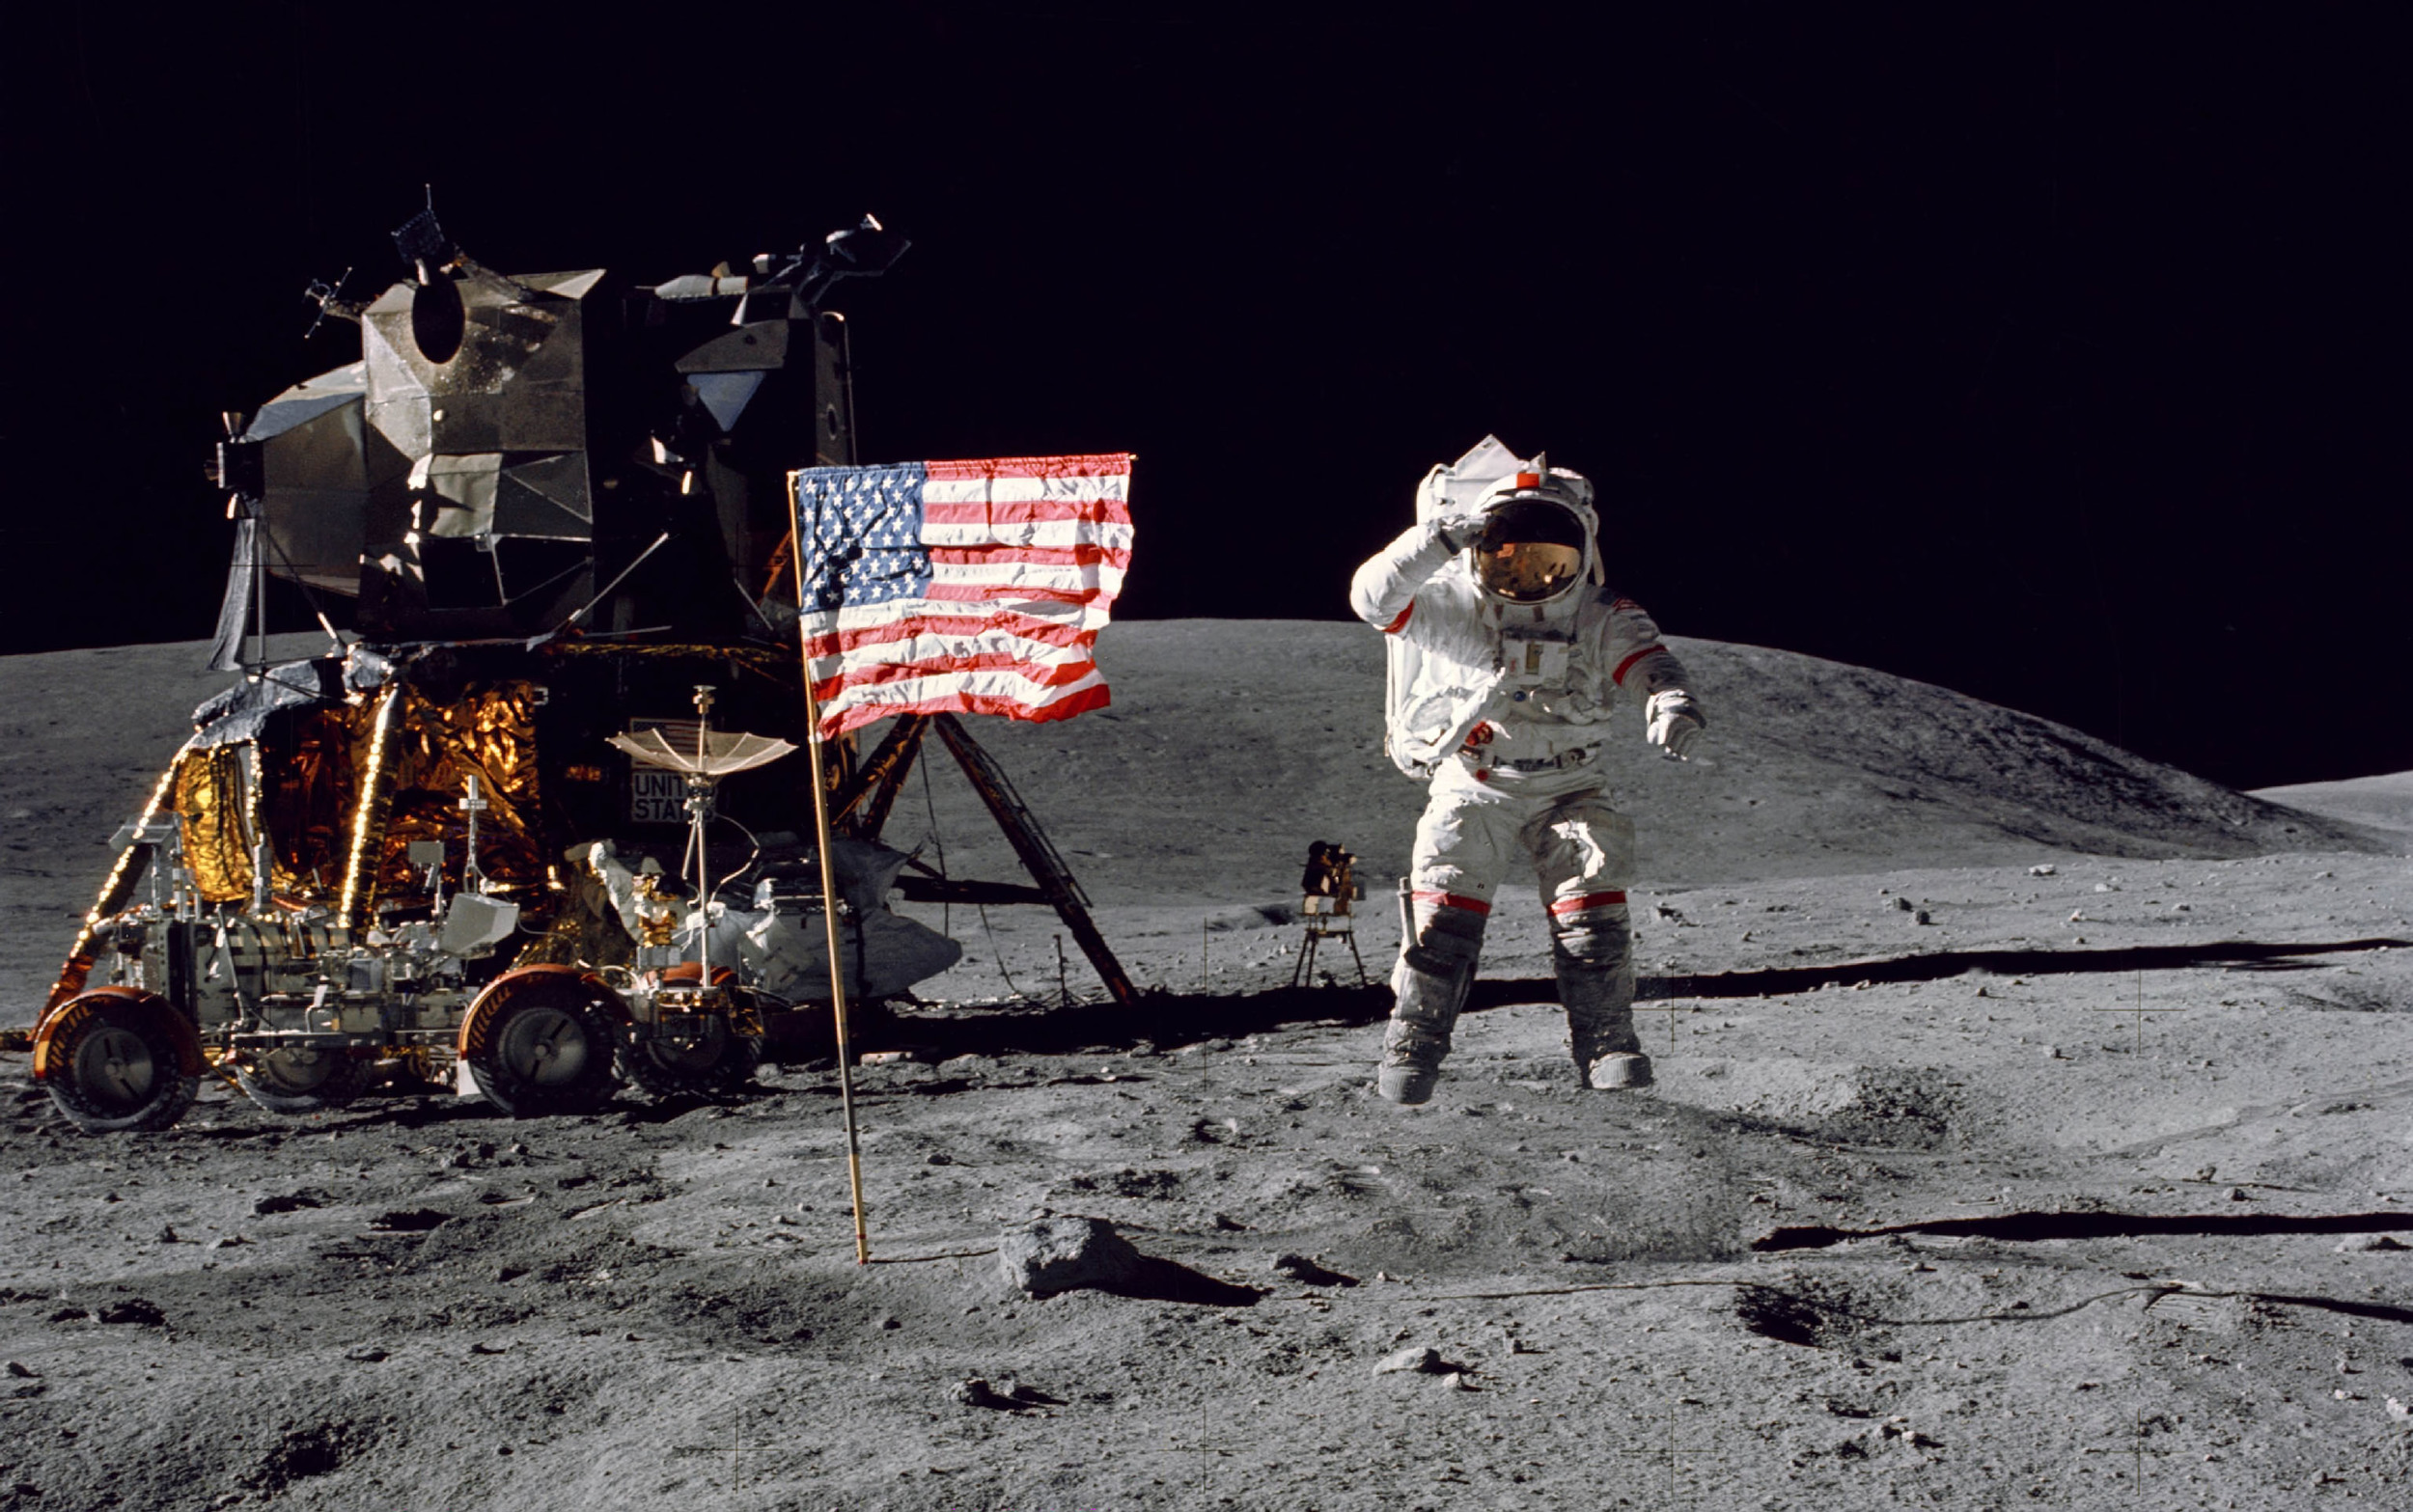 Despite planting a flag there, our laws say the moon isn't American.